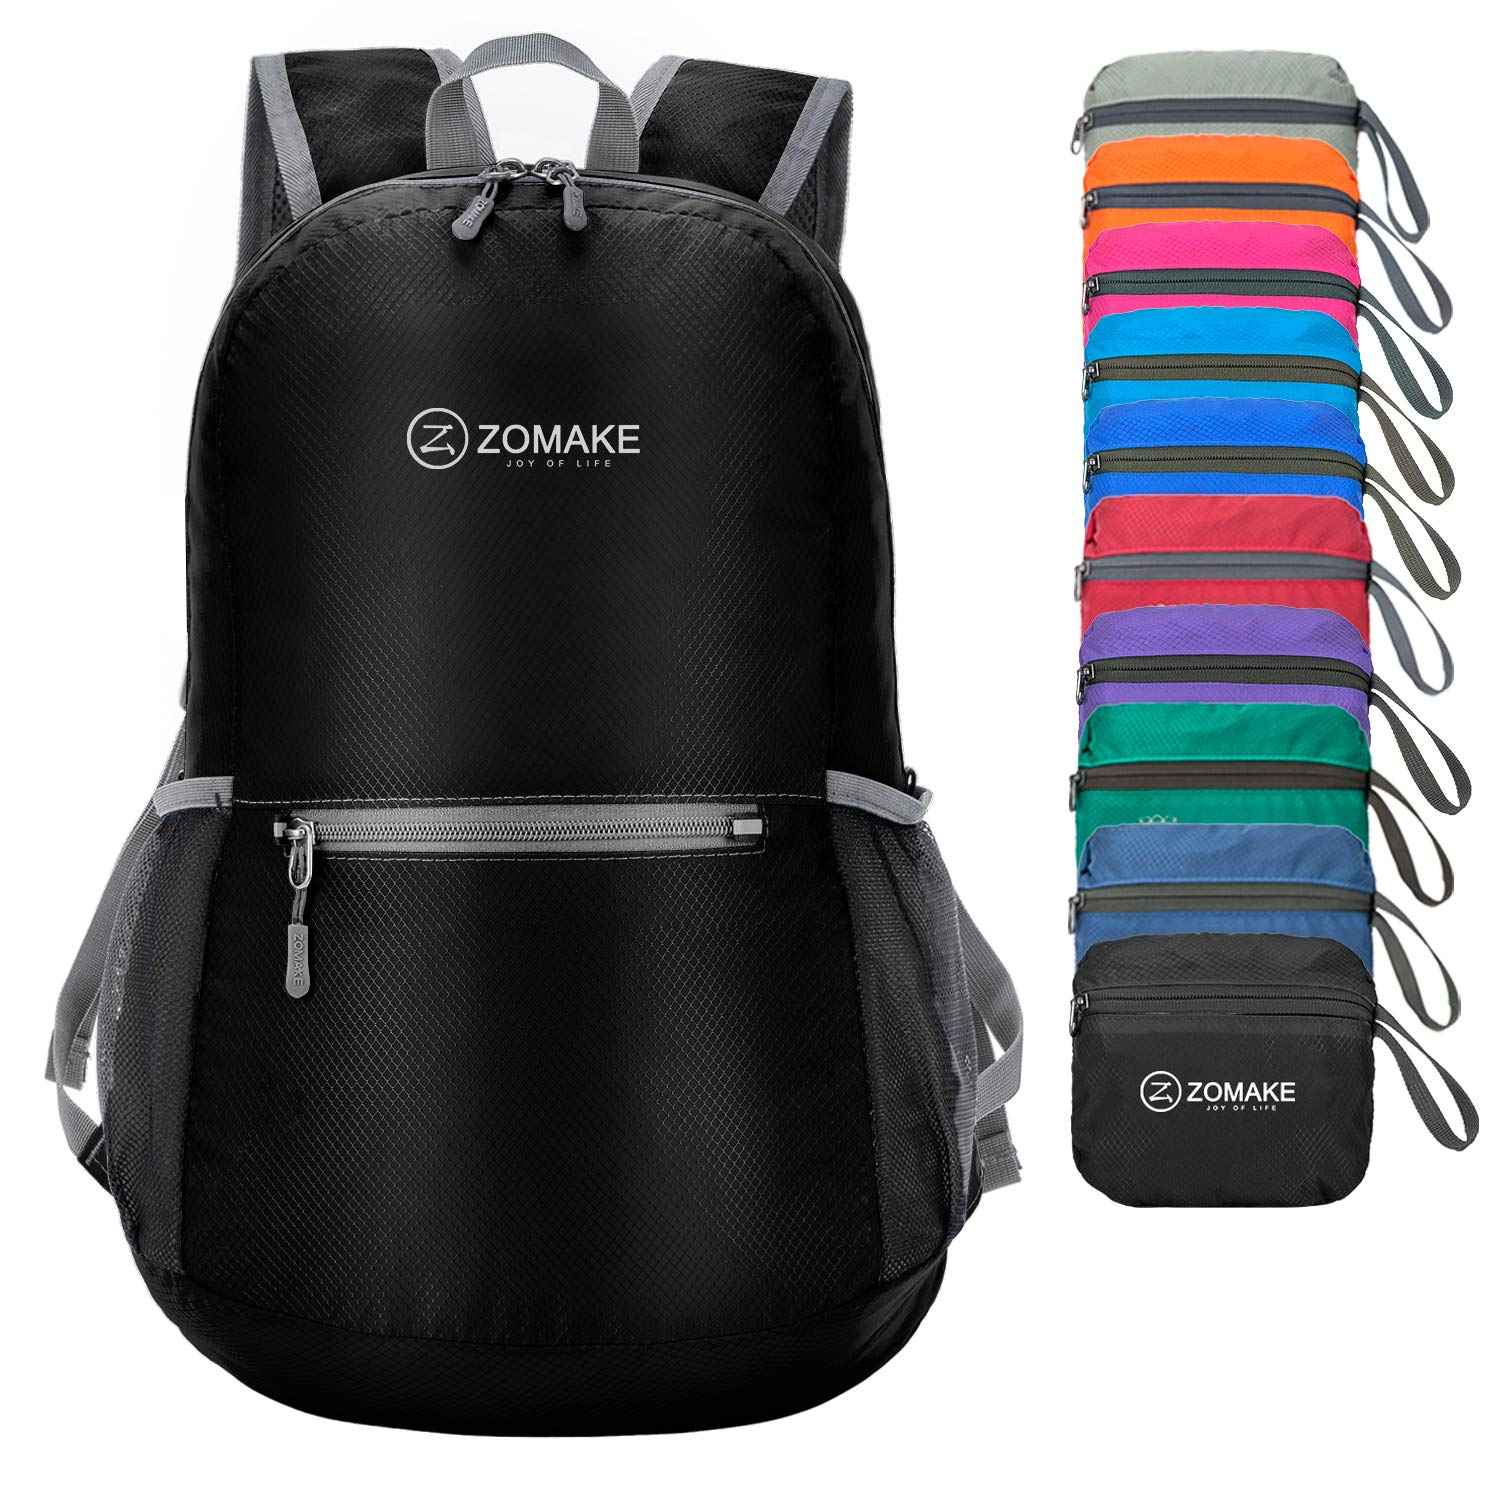 ZOMAKE Ultra Lightweight Packable Backpack Water Resistant Hiking Daypack,Small Backpack Handy Foldable Camping Outdoor Backpack Little Bag by ZOMAKE